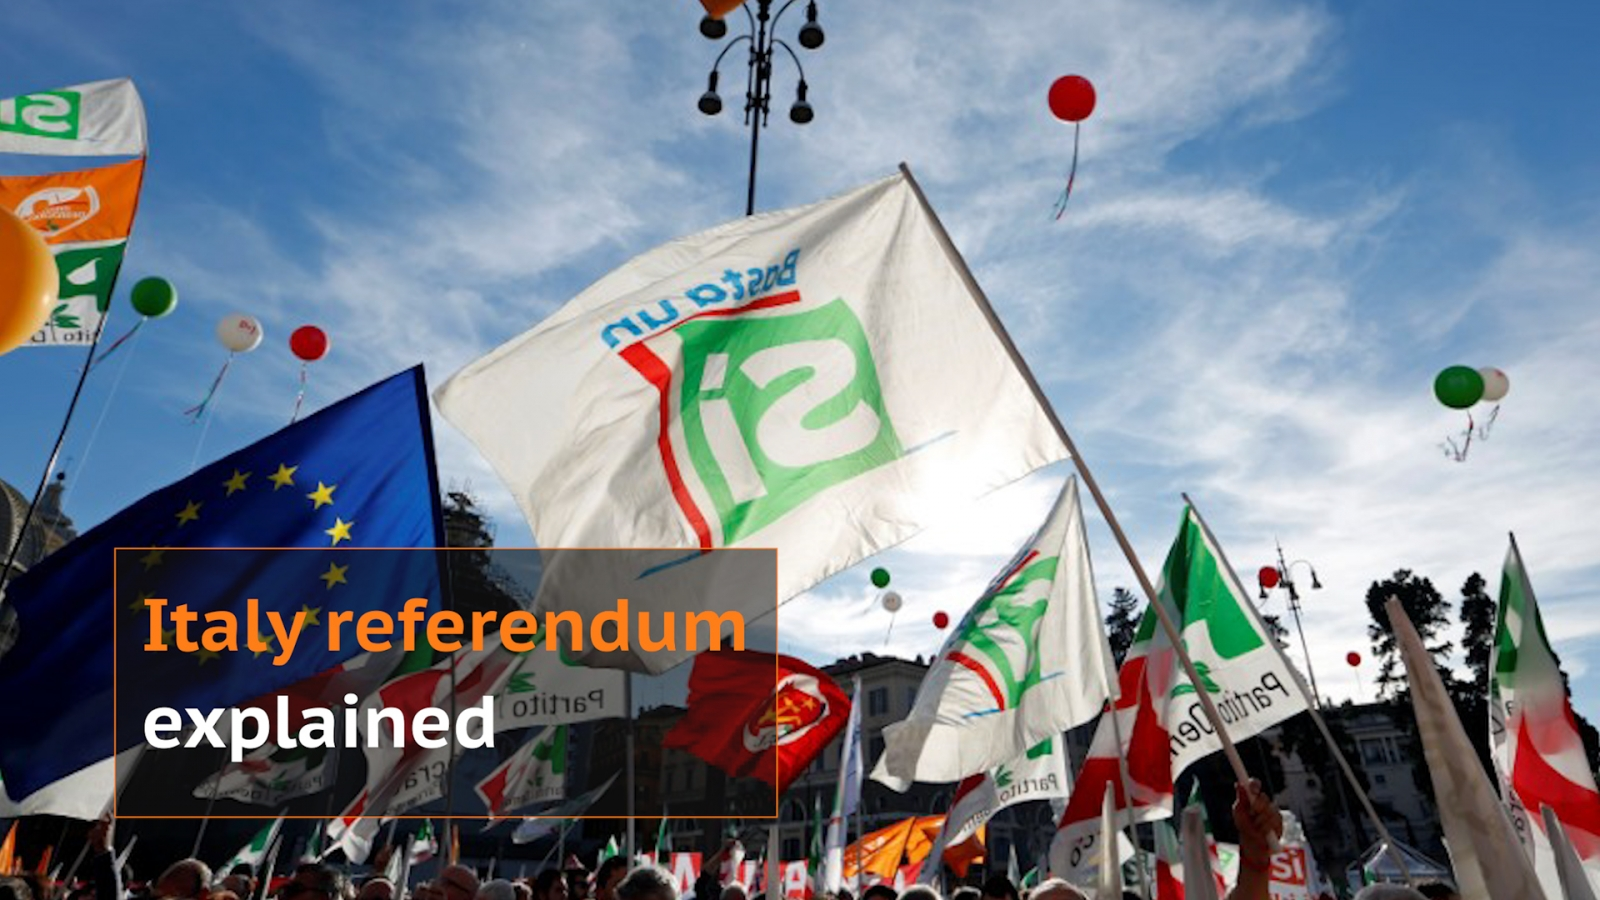 Italy referendum: What is at stake?